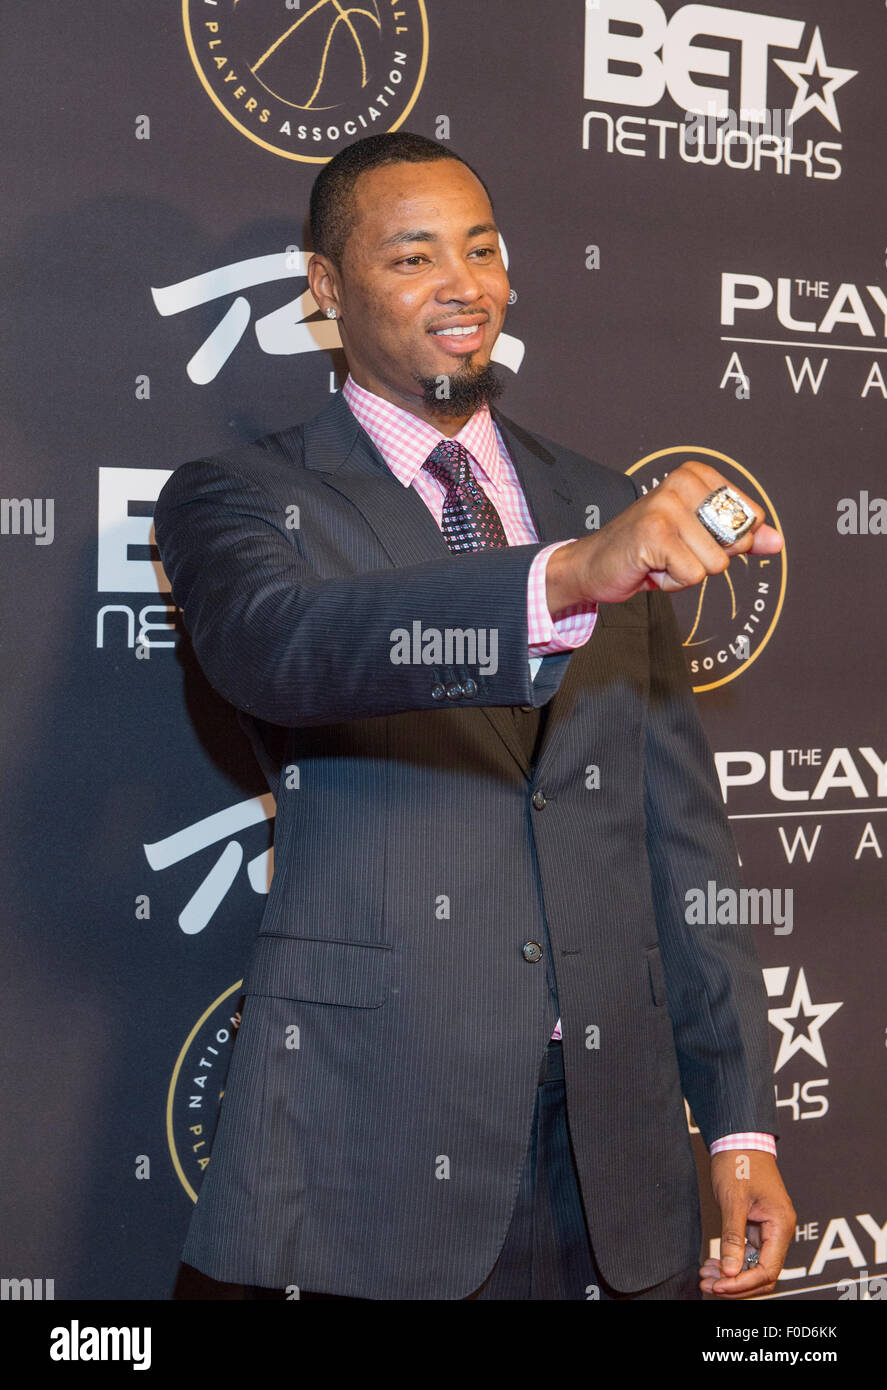 NBA player Rashard Lewis attends The Players Awards at the Rio